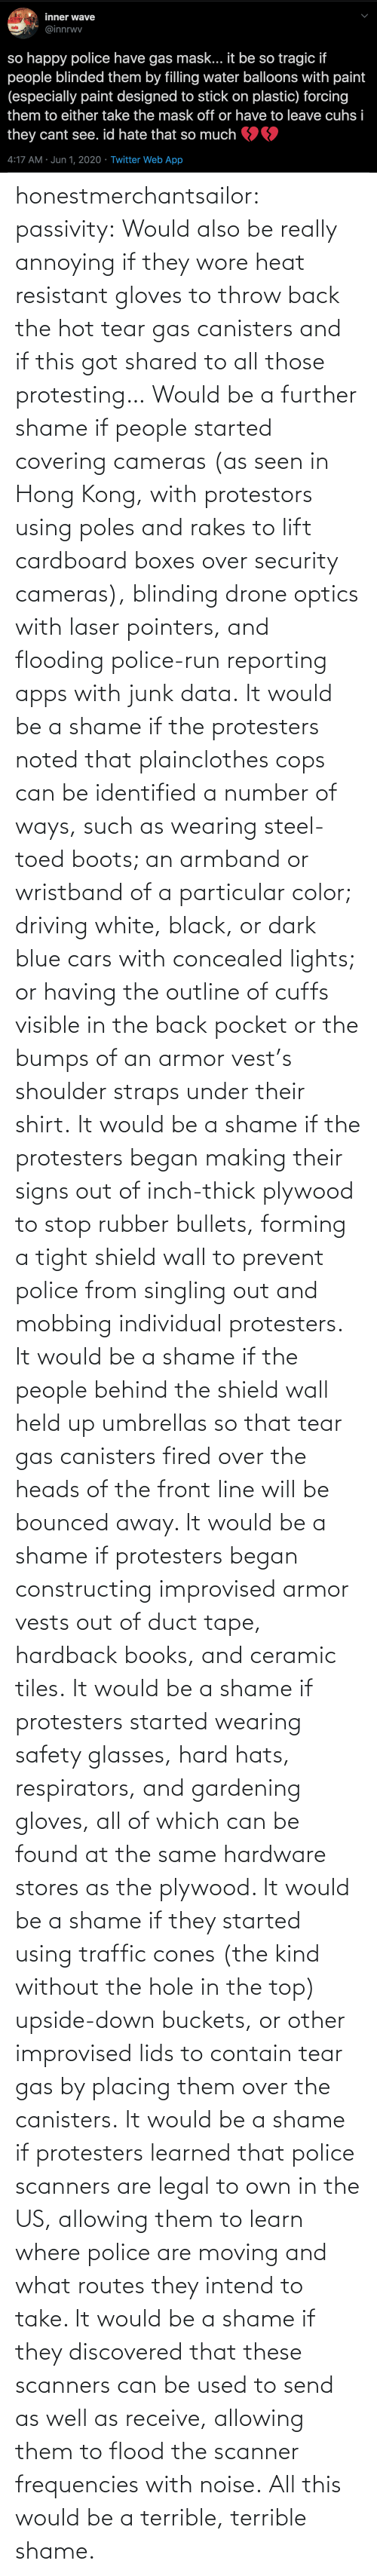 shirt: honestmerchantsailor:  passivity: Would also be really annoying if they wore heat resistant gloves to throw back the hot tear gas canisters and if this got shared to all those protesting… Would be a further shame if people started covering cameras (as seen in Hong Kong, with protestors using poles and rakes to lift cardboard boxes over security cameras), blinding drone optics with laser pointers, and flooding police-run reporting apps with junk data. It would be a shame if the protesters noted that plainclothes cops can be identified a number of ways, such as wearing steel-toed boots; an armband or wristband of a particular color; driving white, black, or dark blue cars with concealed lights; or having the outline of cuffs visible in the back pocket or the bumps of an armor vest's shoulder straps under their shirt. It would be a shame if the protesters began making their signs out of inch-thick plywood to stop rubber bullets, forming a tight shield wall to prevent police from singling out and mobbing individual protesters. It would be a shame if the people behind the shield wall held up umbrellas so that tear gas canisters fired over the heads of the front line will be bounced away. It would be a shame if protesters began constructing improvised armor vests out of duct tape, hardback books, and ceramic tiles. It would be a shame if protesters started wearing safety glasses, hard hats, respirators, and gardening gloves, all of which can be found at the same hardware stores as the plywood. It would be a shame if they started using traffic cones (the kind without the hole in the top) upside-down buckets, or other improvised lids to contain tear gas by placing them over the canisters. It would be a shame if protesters learned that police scanners are legal to own in the US, allowing them to learn where police are moving and what routes they intend to take. It would be a shame if they discovered that these scanners can be used to send as well as receive, allowing them to flood the scanner frequencies with noise. All this would be a terrible, terrible shame.